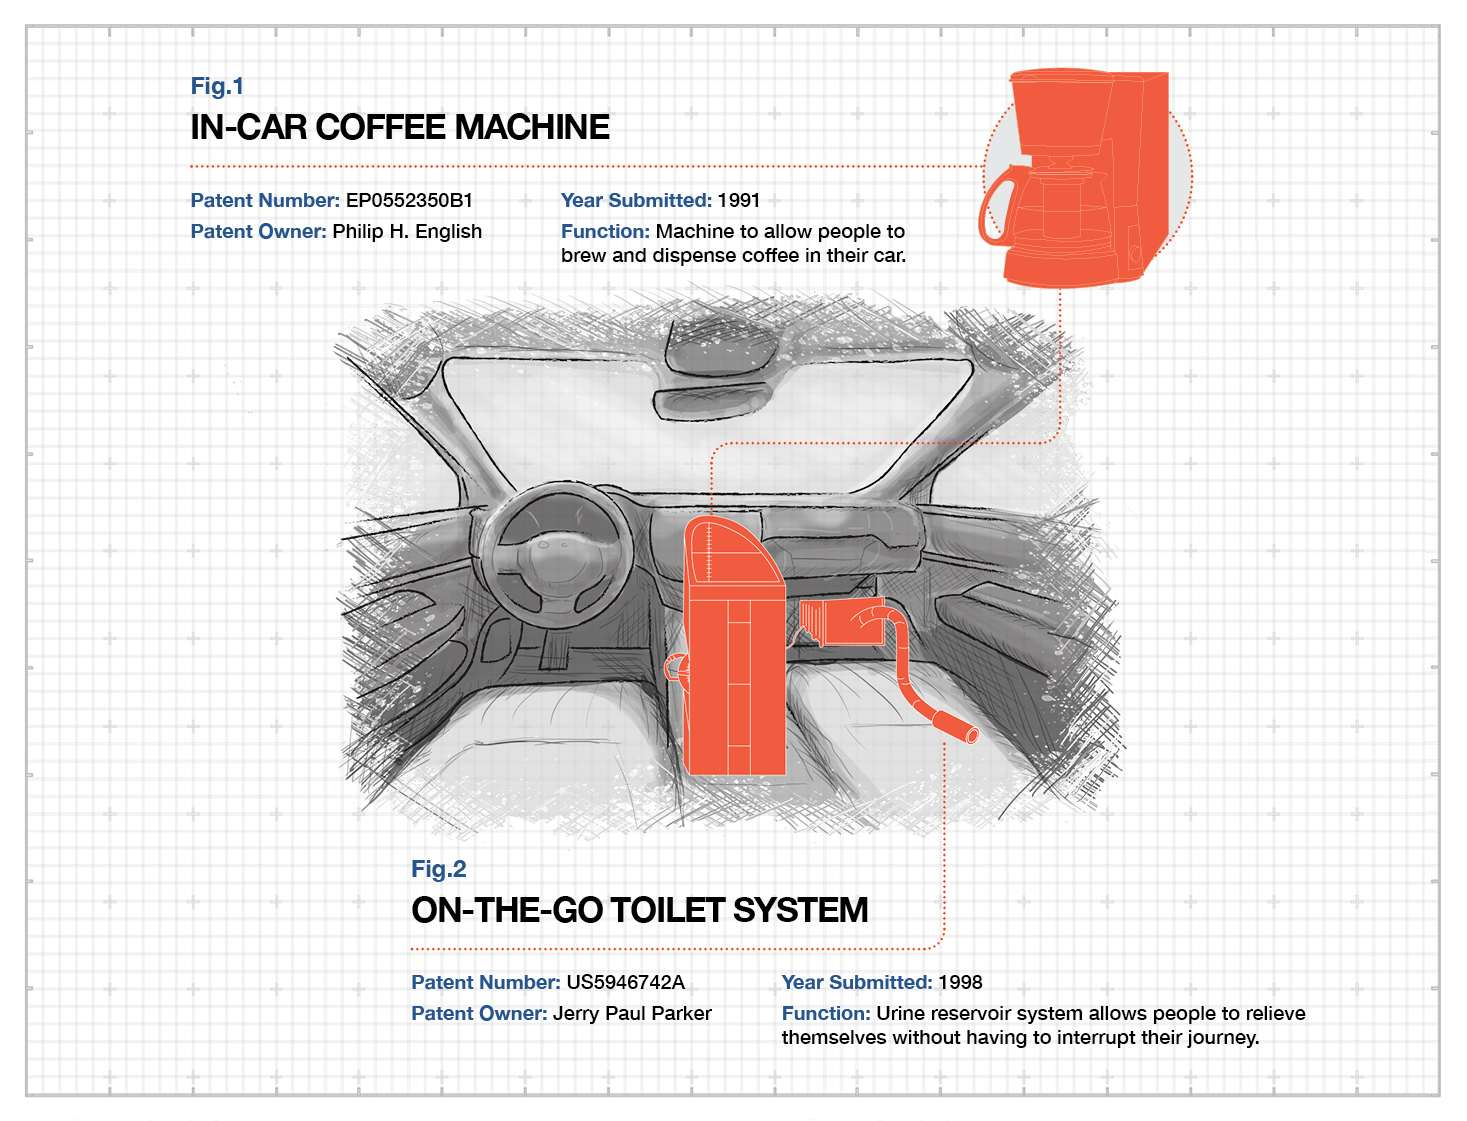 ![Weirdest Car Patents In Car Coffee Machine](/Assets/campaigns/celebrity-cars/weird-patents/weird-car-patents7.jpg